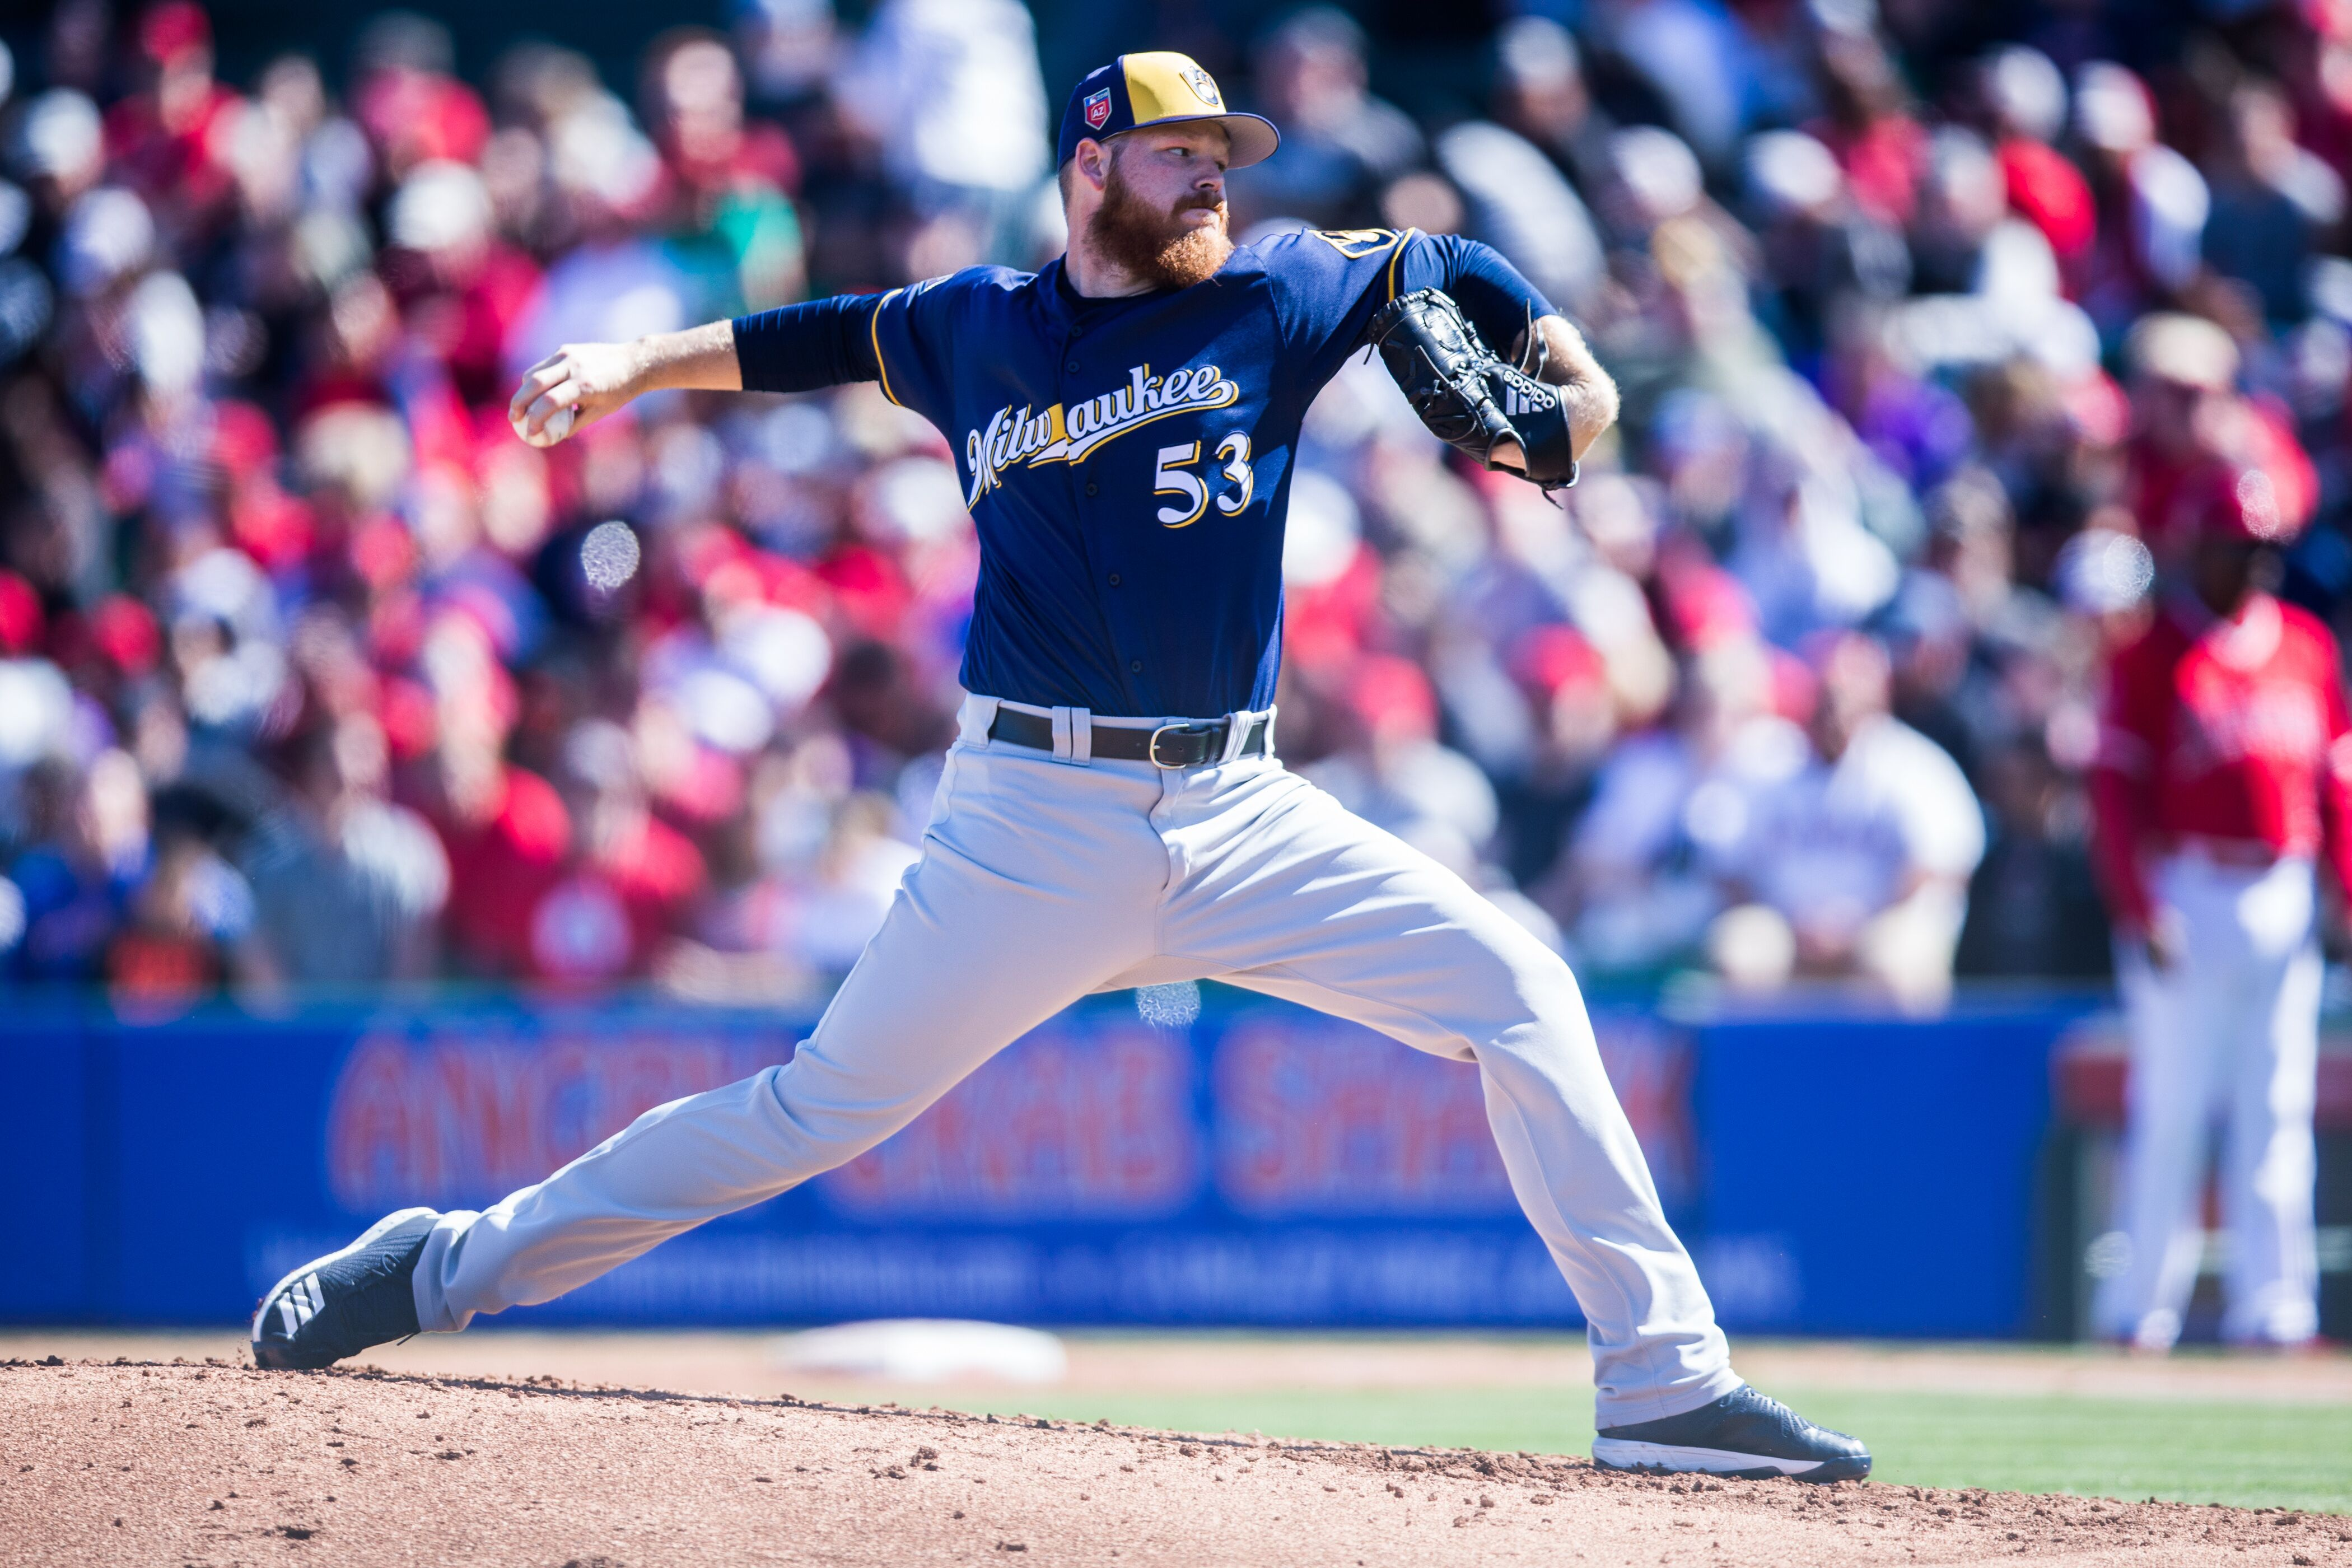 923886484-milwaukee-brewers-v-los-angeles-angels-of-anaheim.jpg